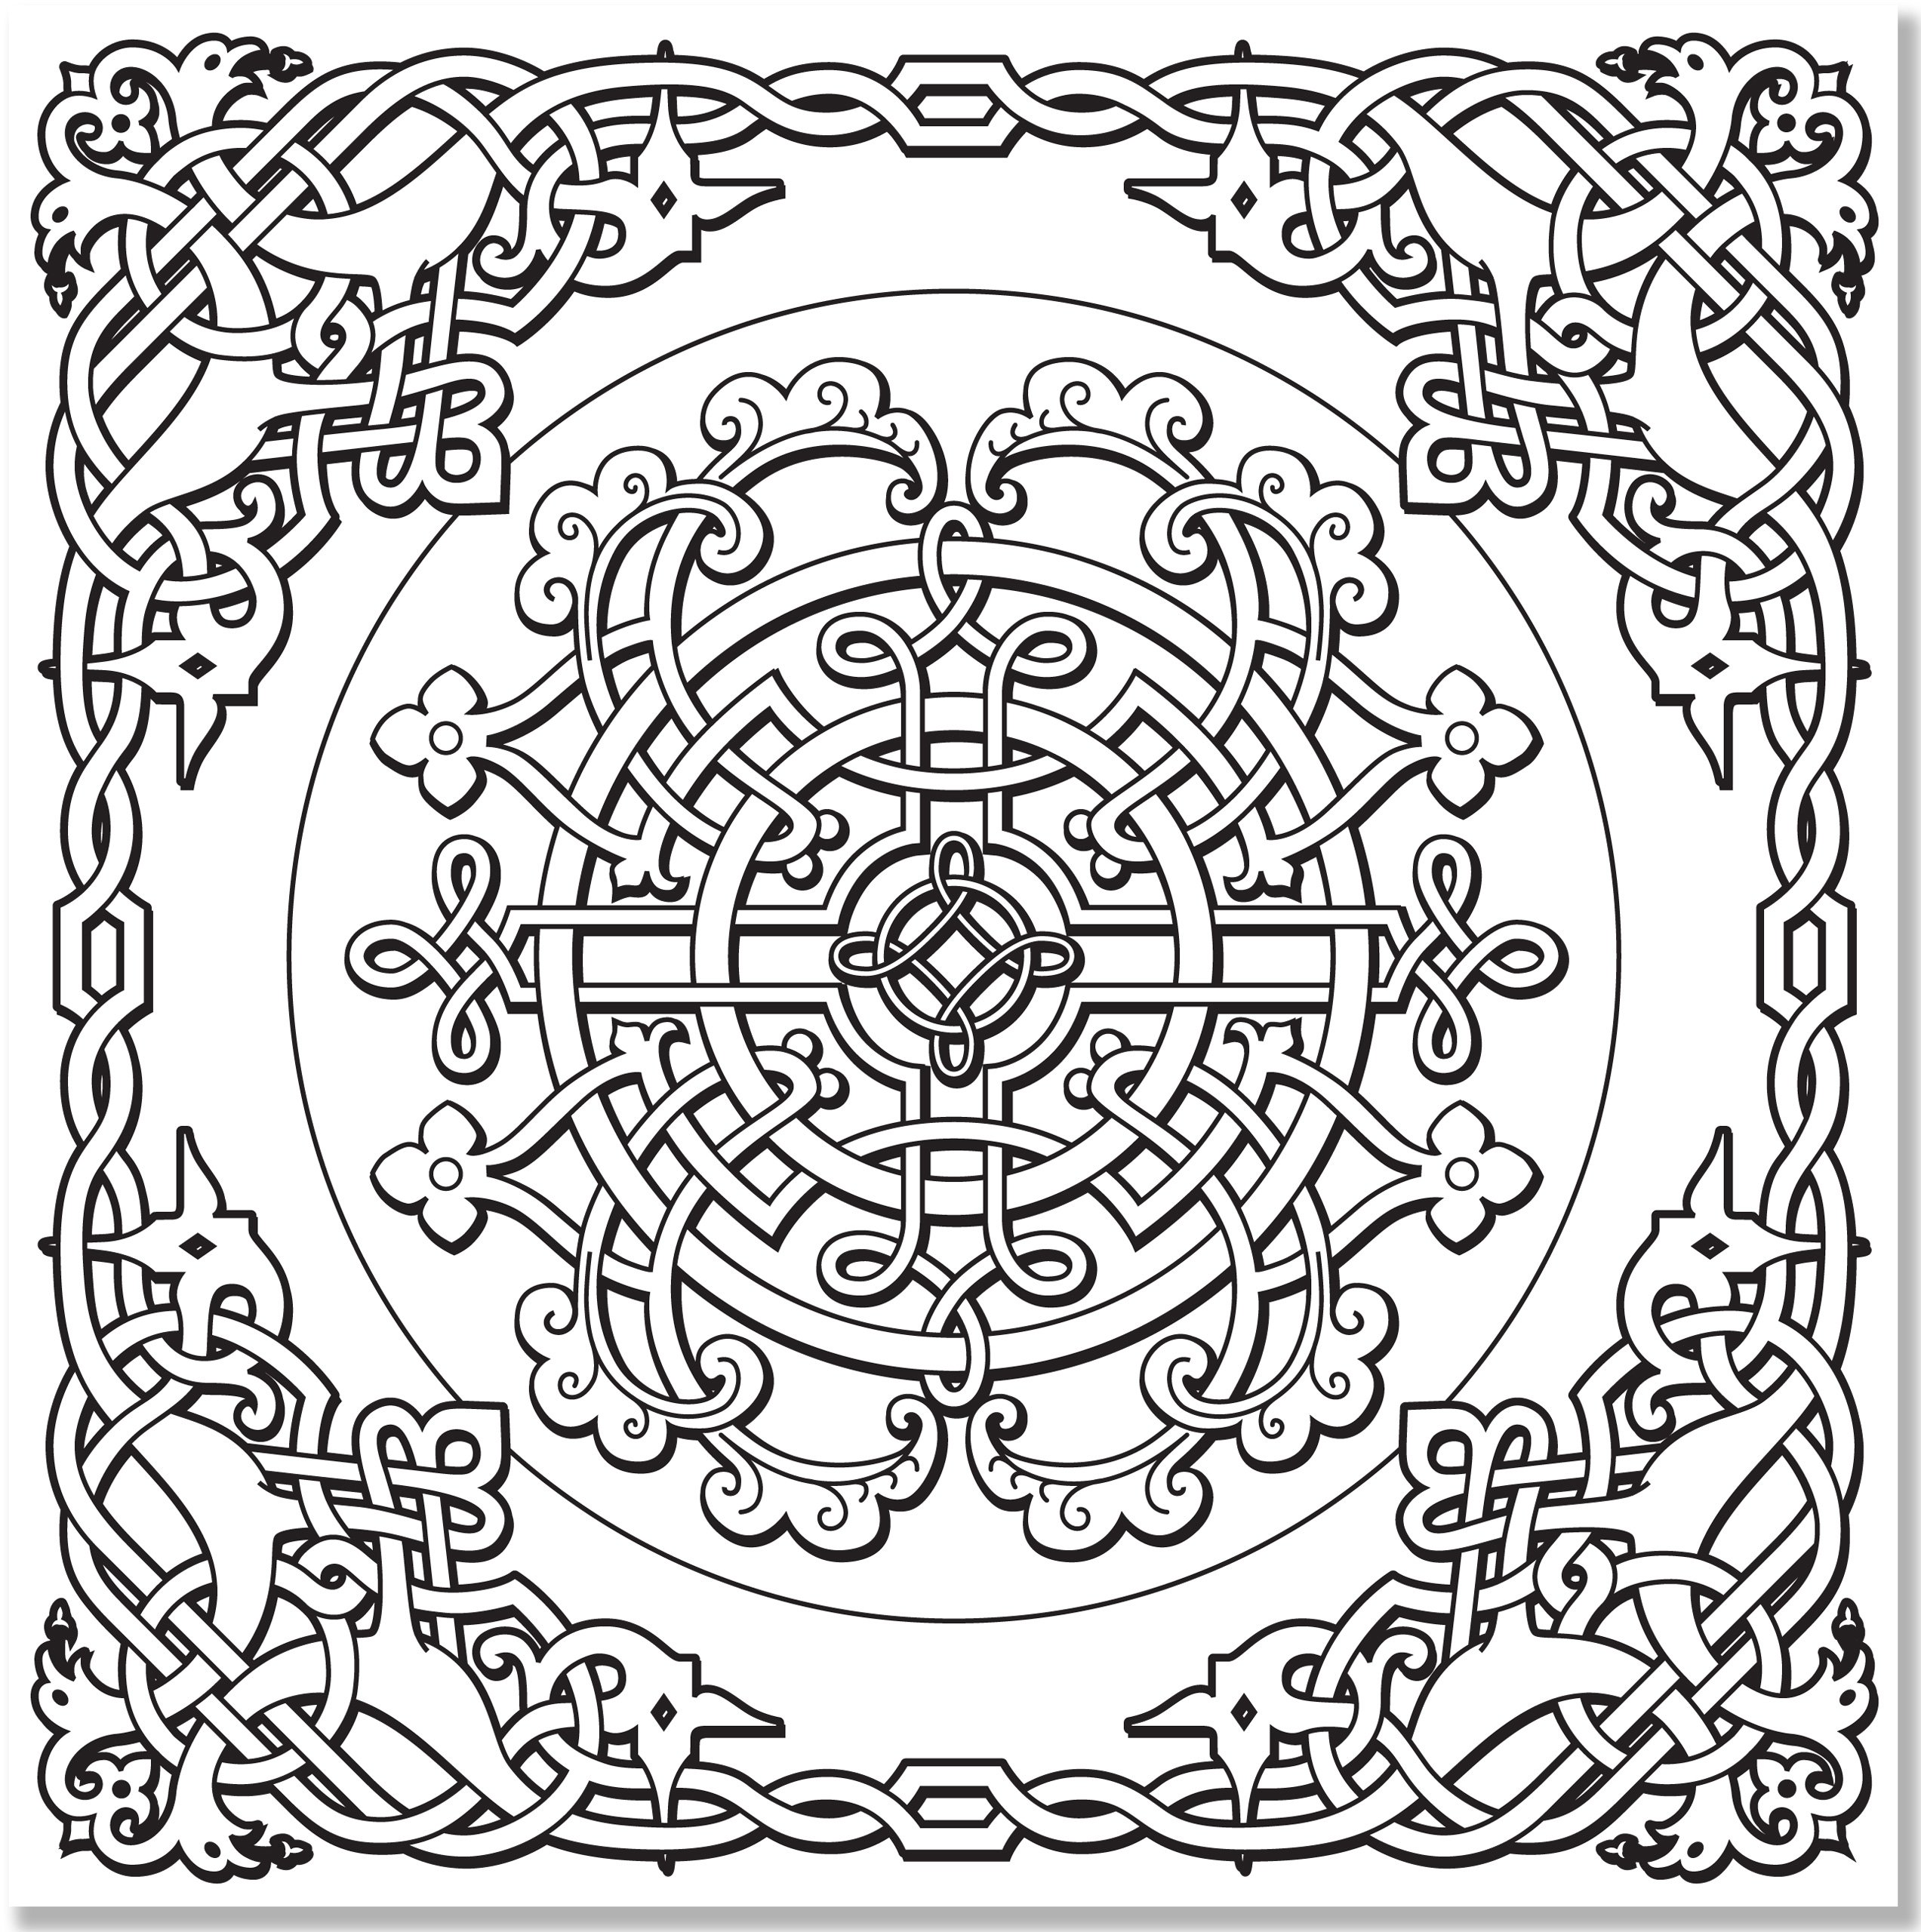 Coloring pages for adults crosses - Amazon Com Celtic Designs Adult Coloring Book 31 Stress Relieving Designs Studio 9781441317438 Peter Pauper Press Books